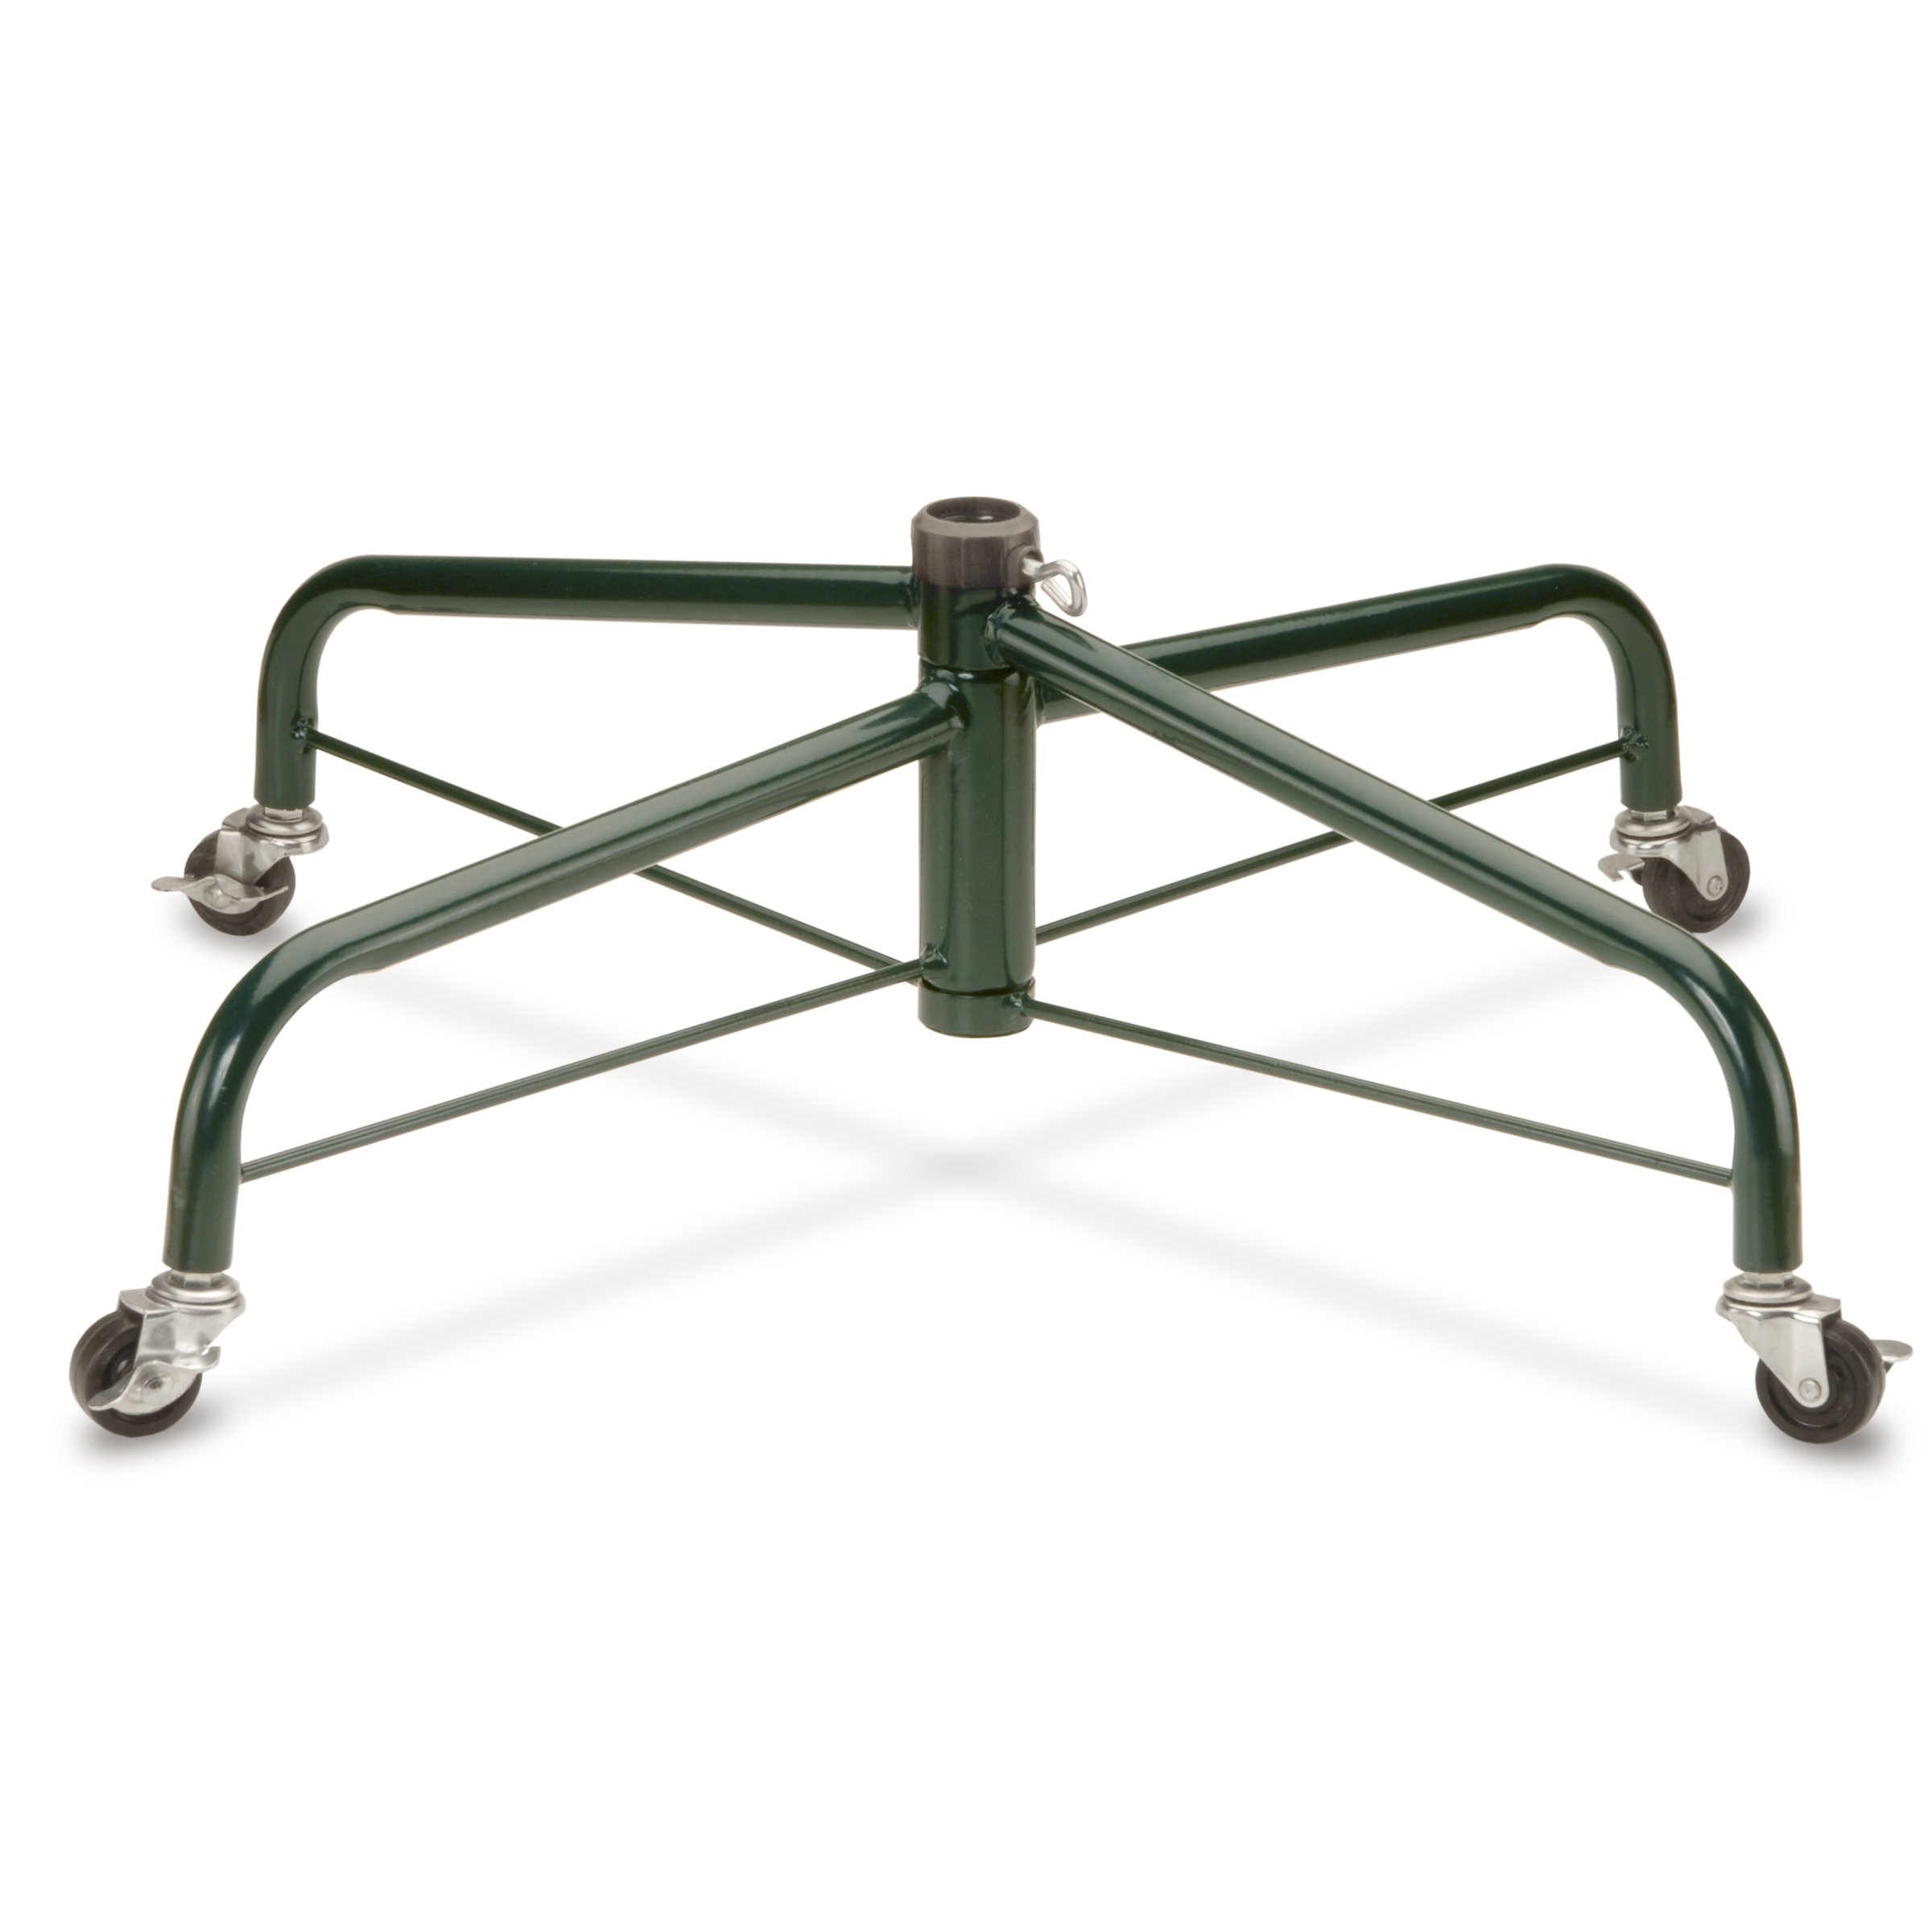 National Tree 32 Inch Folding Tree Stand with Rolling Wheels for 9 to 10 Foot Trees, Fits 1.25-Inch Pole (FTS-32R-1) by National Tree Company